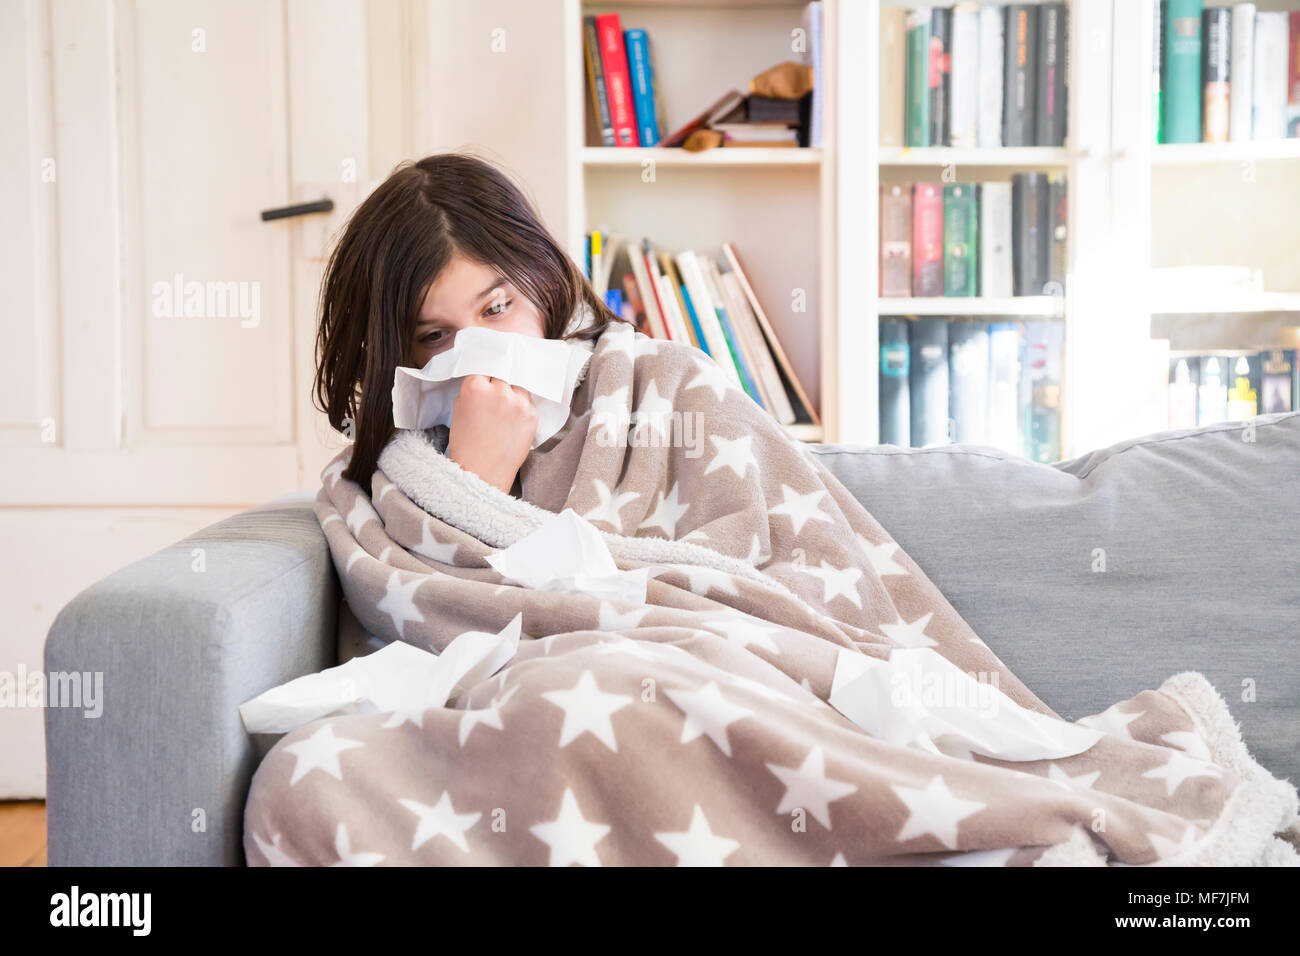 Sick girl sitting on the couch at home blowing nose - Stock Image